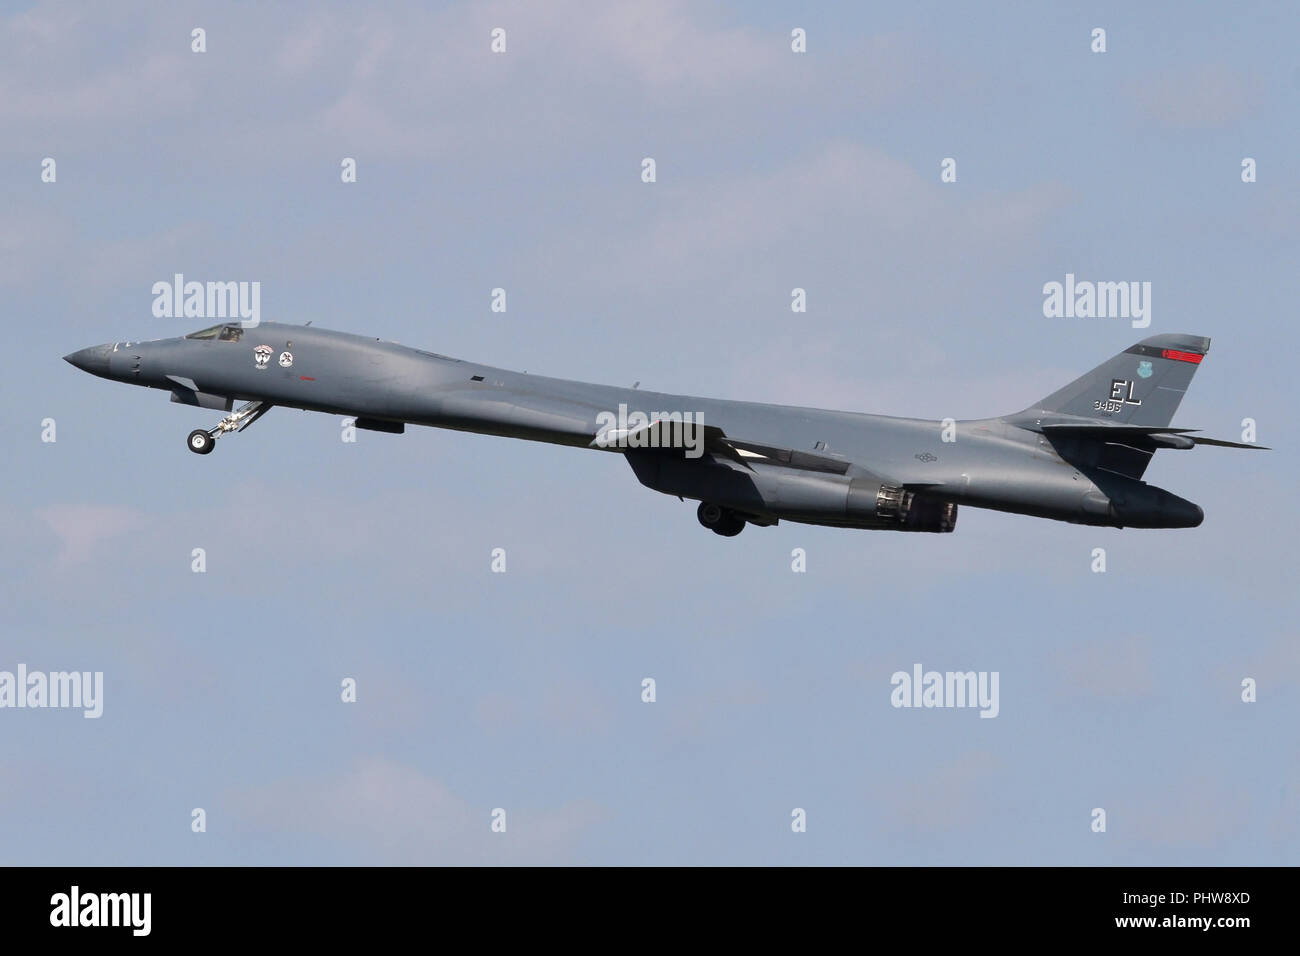 Rockwell B-1B Lancer from the 34th Bomb Squadron at Ellsworth AFB, South Dakota climbing out of RAF Mildenhall, Suffolk after a brief fuel stop. - Stock Image